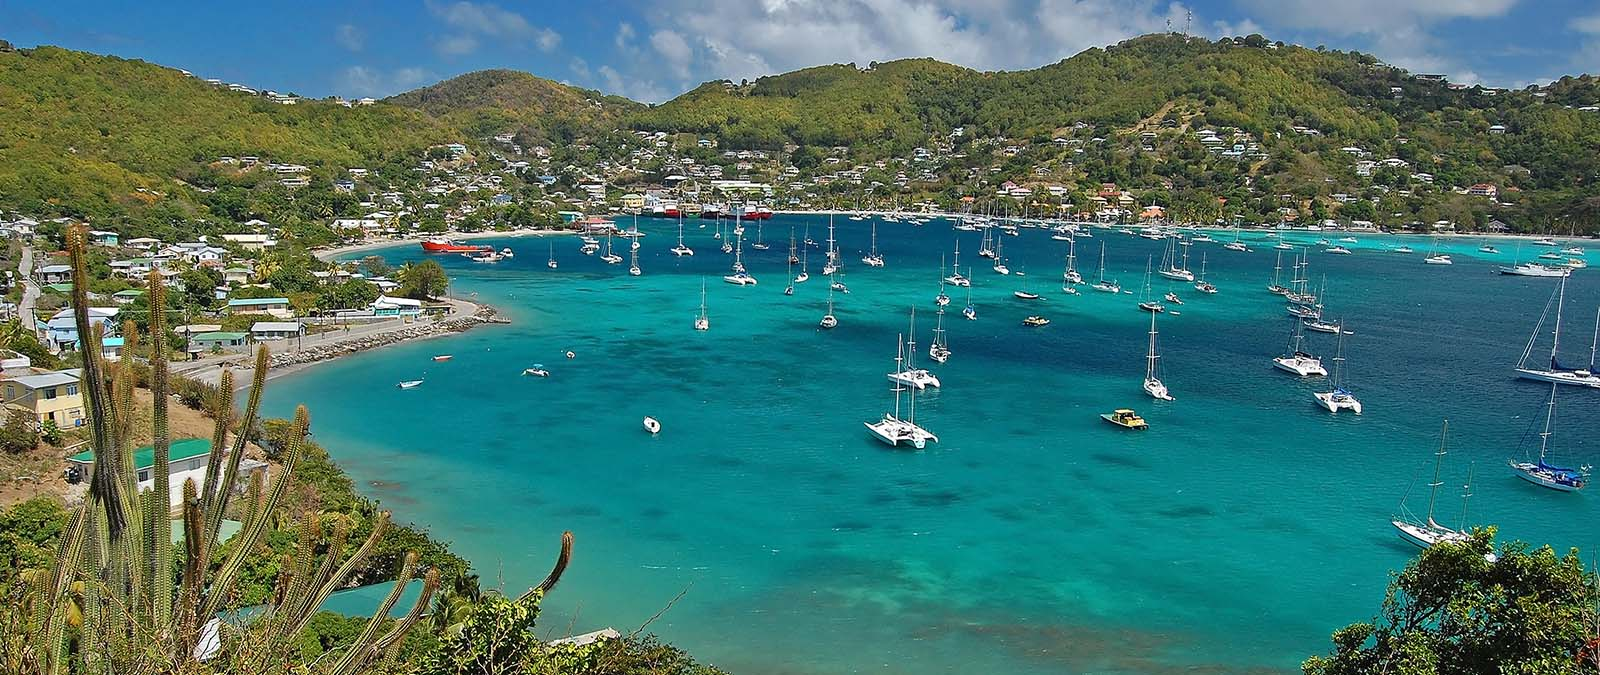 "More commonly known as the ""Spice Isle"", Grenada offers beautiful unspoilt beaches, diving, sailing, hiking and so much more."